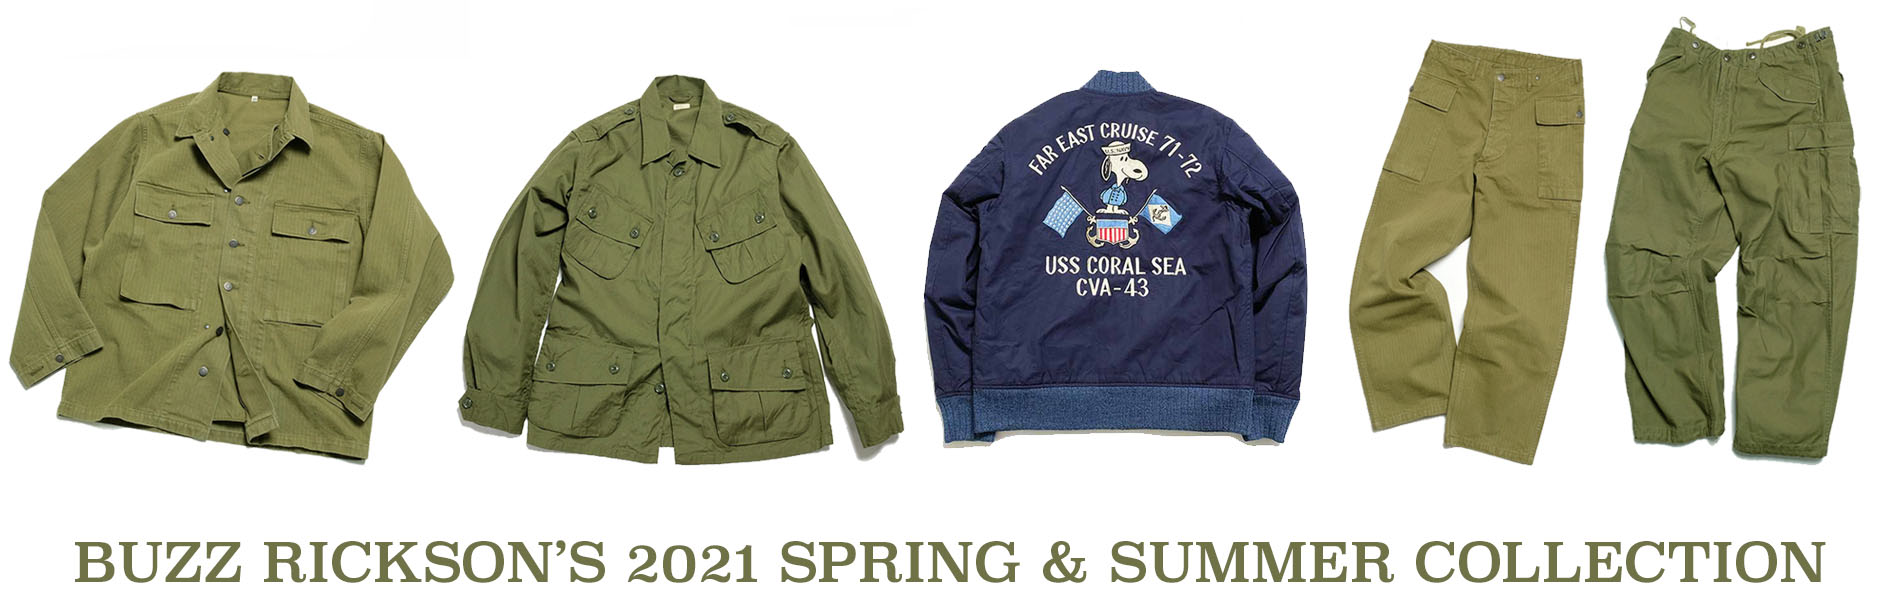 BUZZ RICKSON'S 2021 SPRING & SUMMER COLLECTION